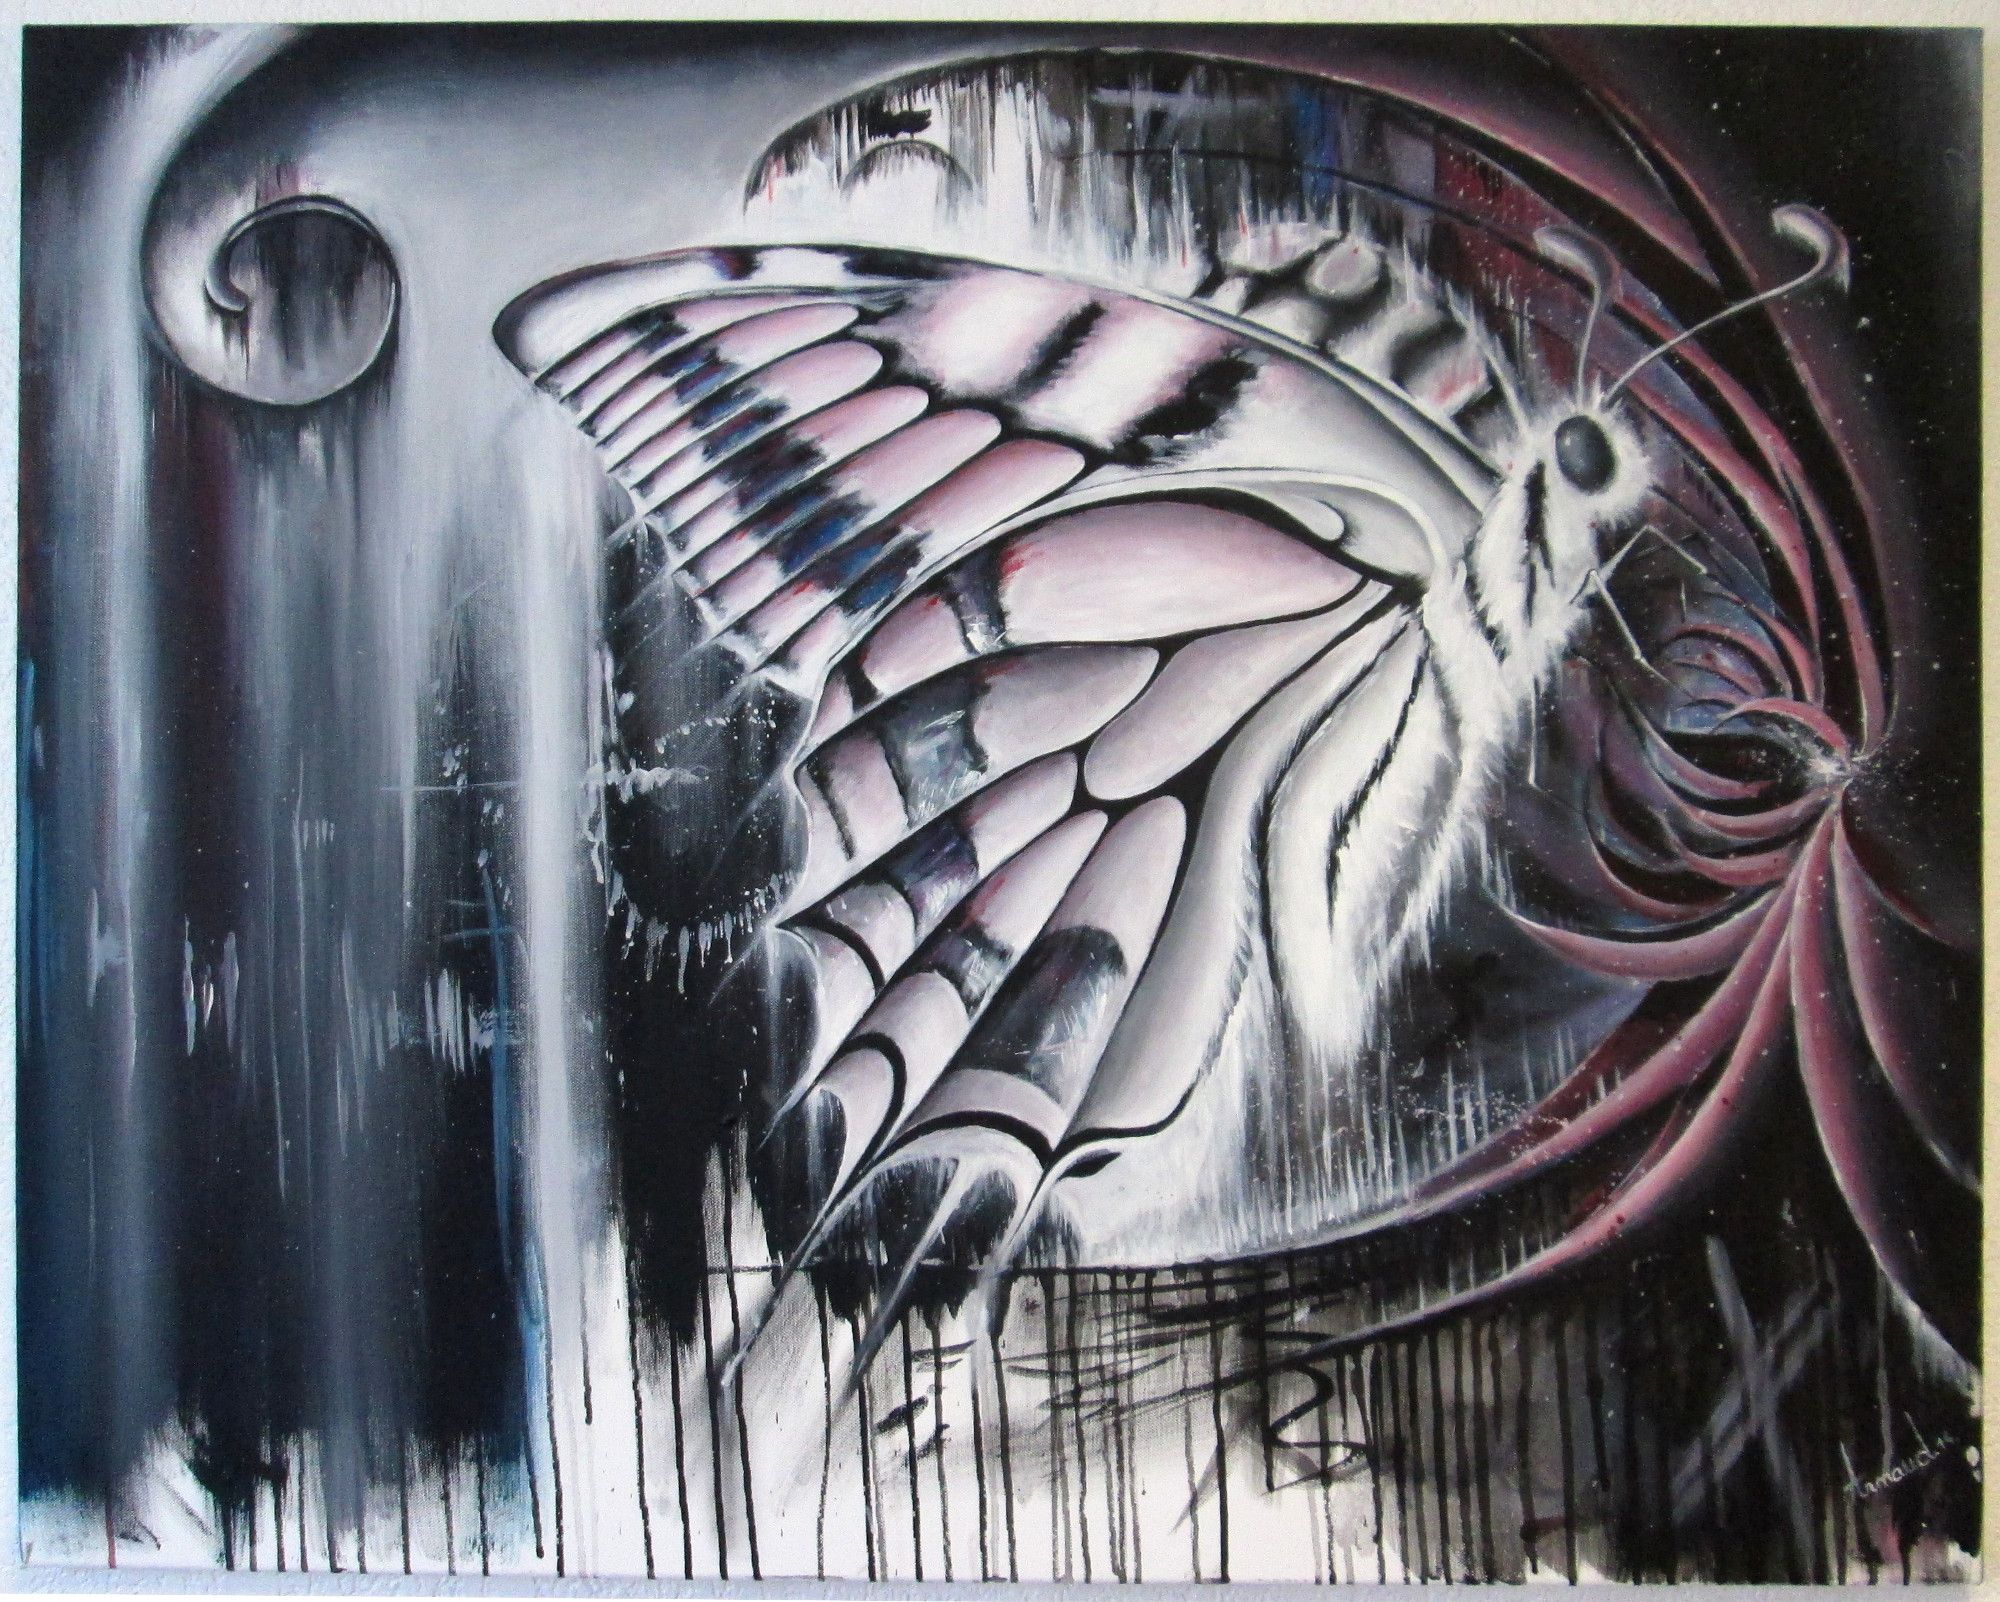 Butterfly - Acrylic on canvas (commission) https://www.facebook.com/apolette/photos/a.874438165909238.1073741828.874426055910449/874438339242554/